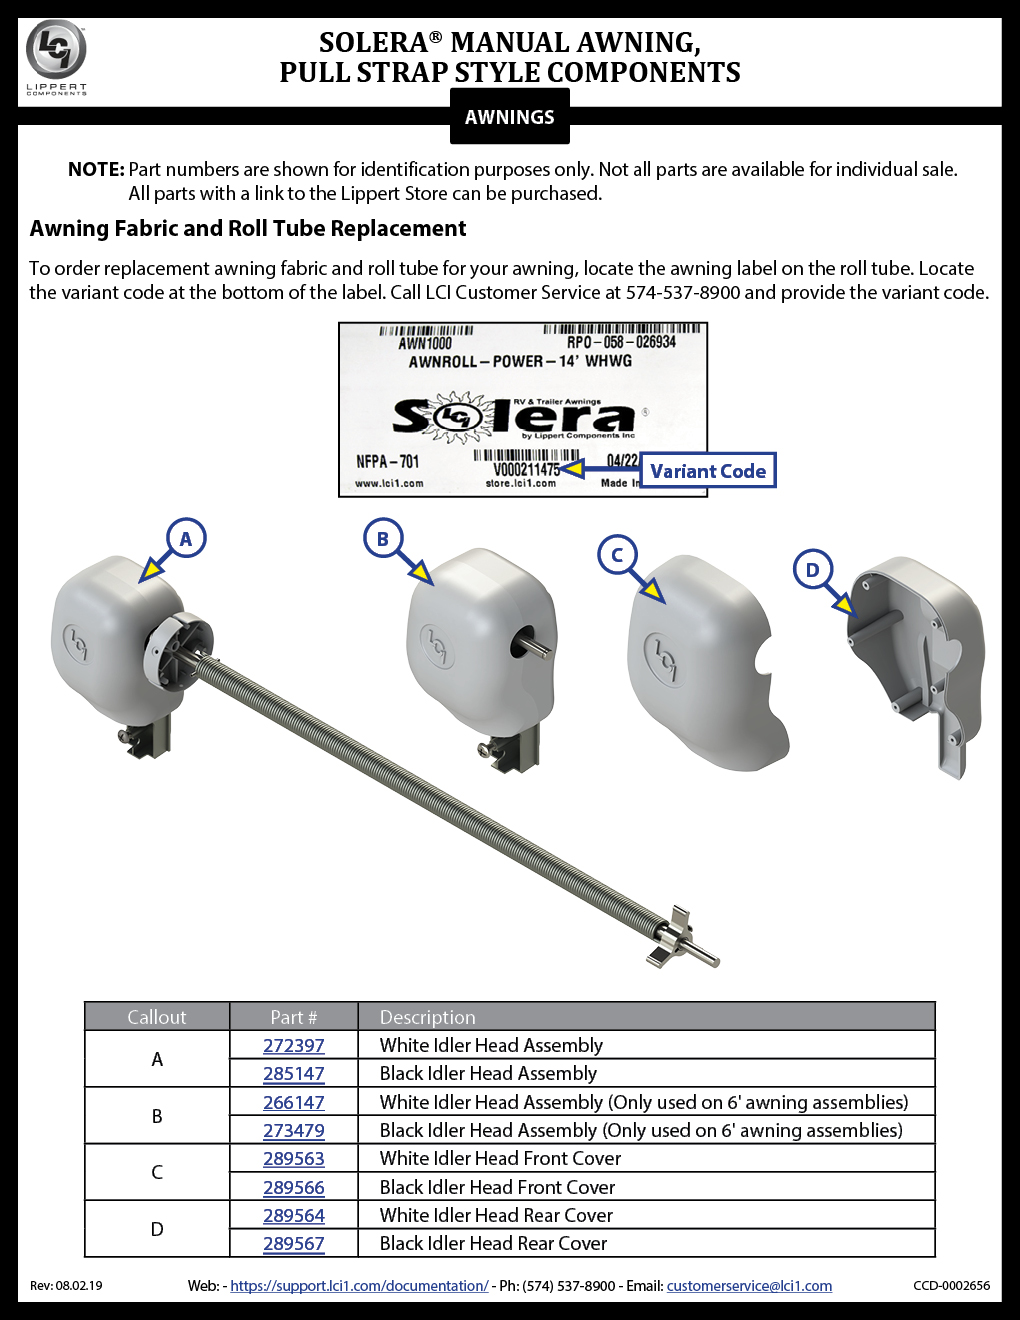 Solera® Manual Awning Pull Strap Style Components